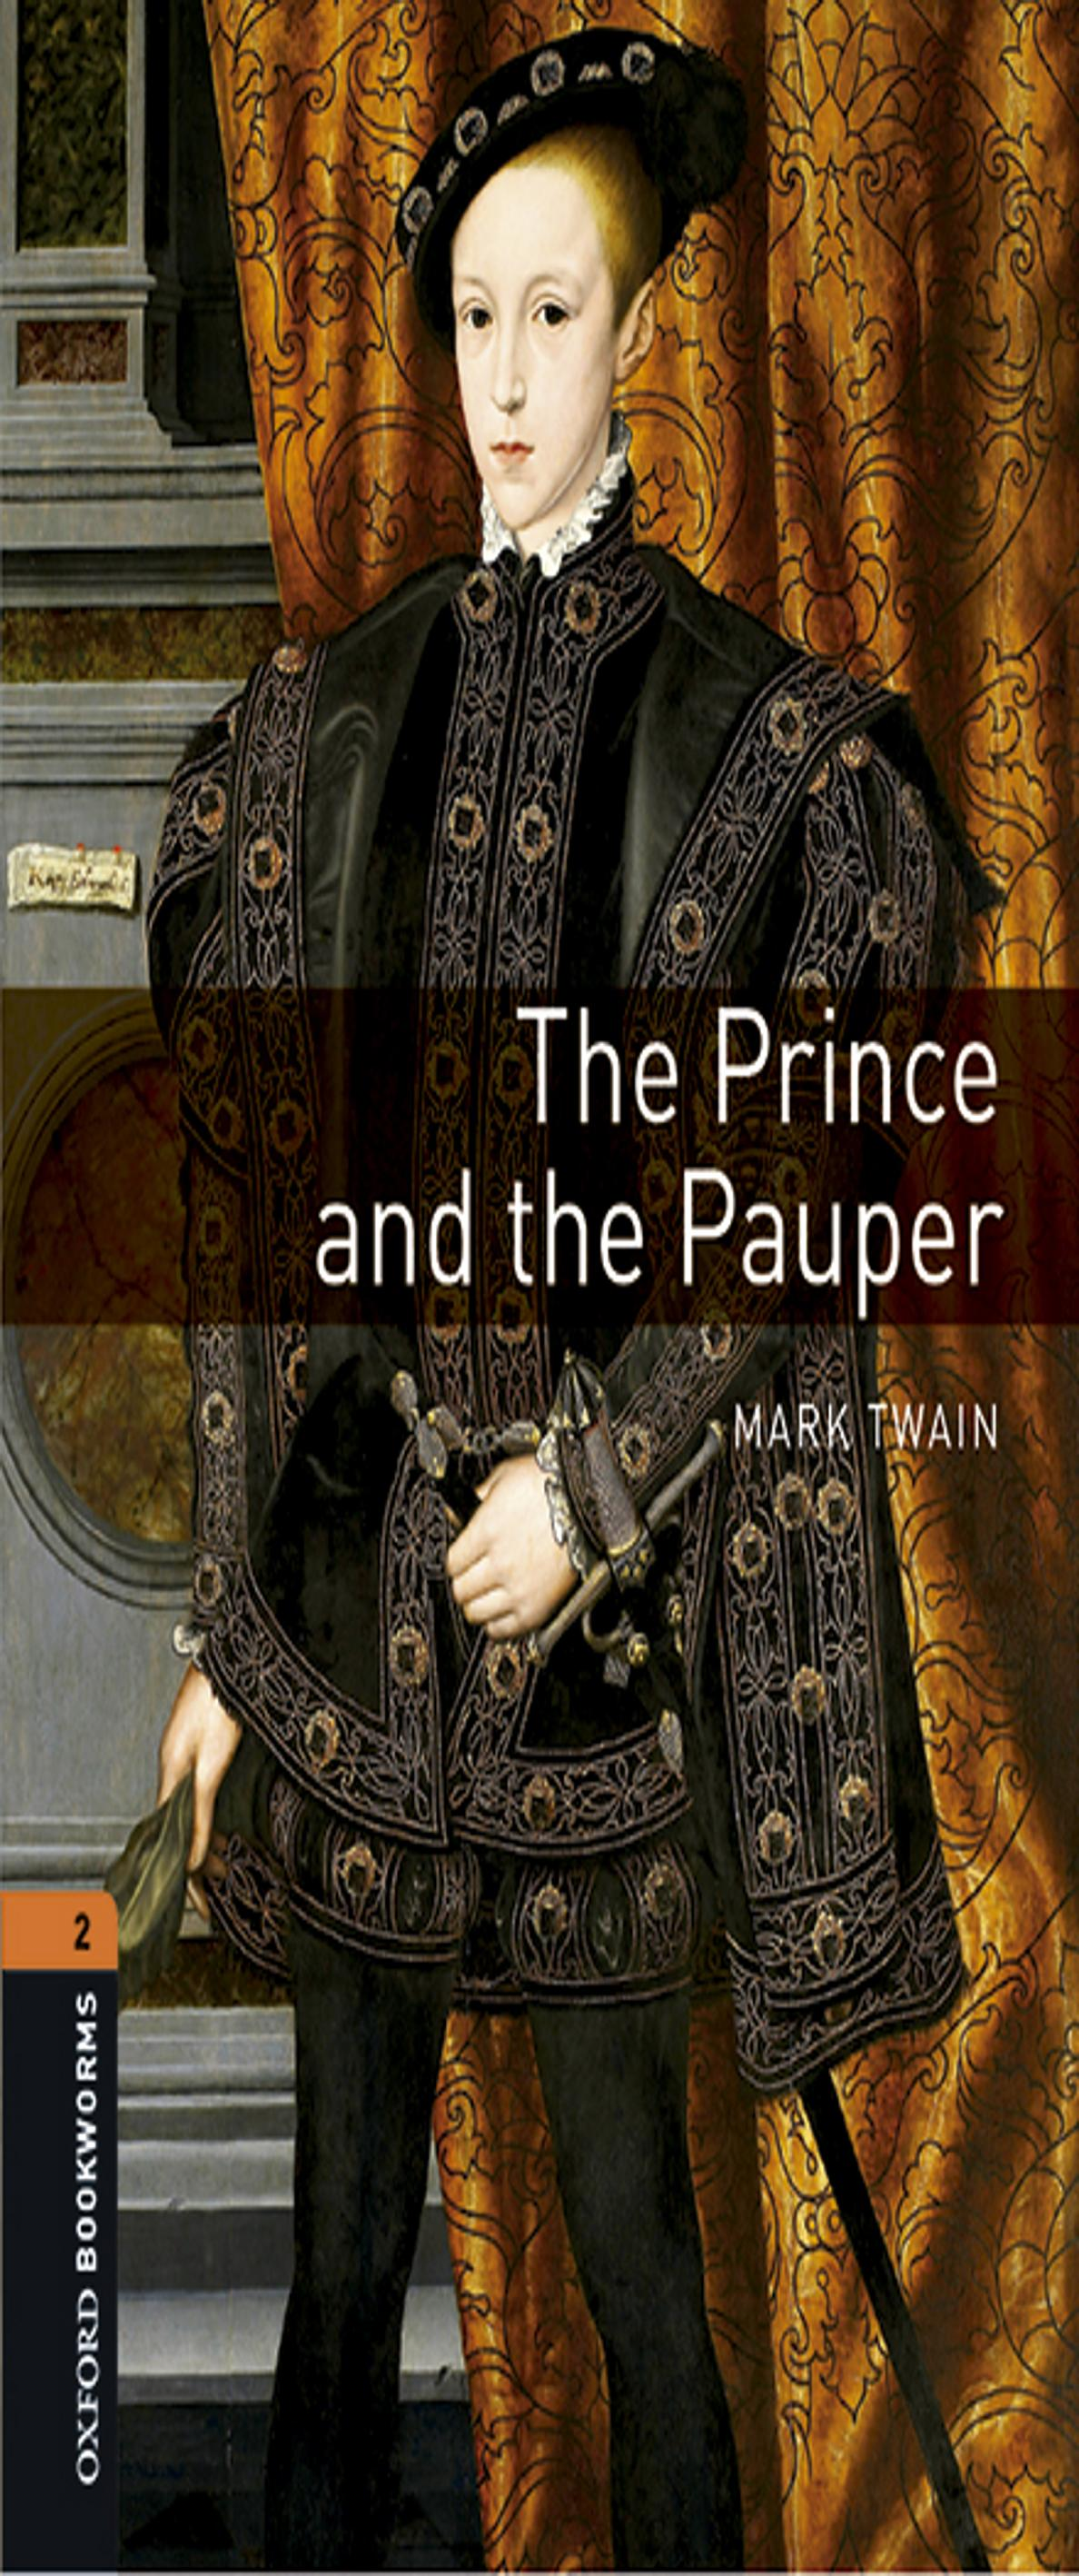 OBL2 - 37 THE PRINCE & THE PAUPER  MP3 PK